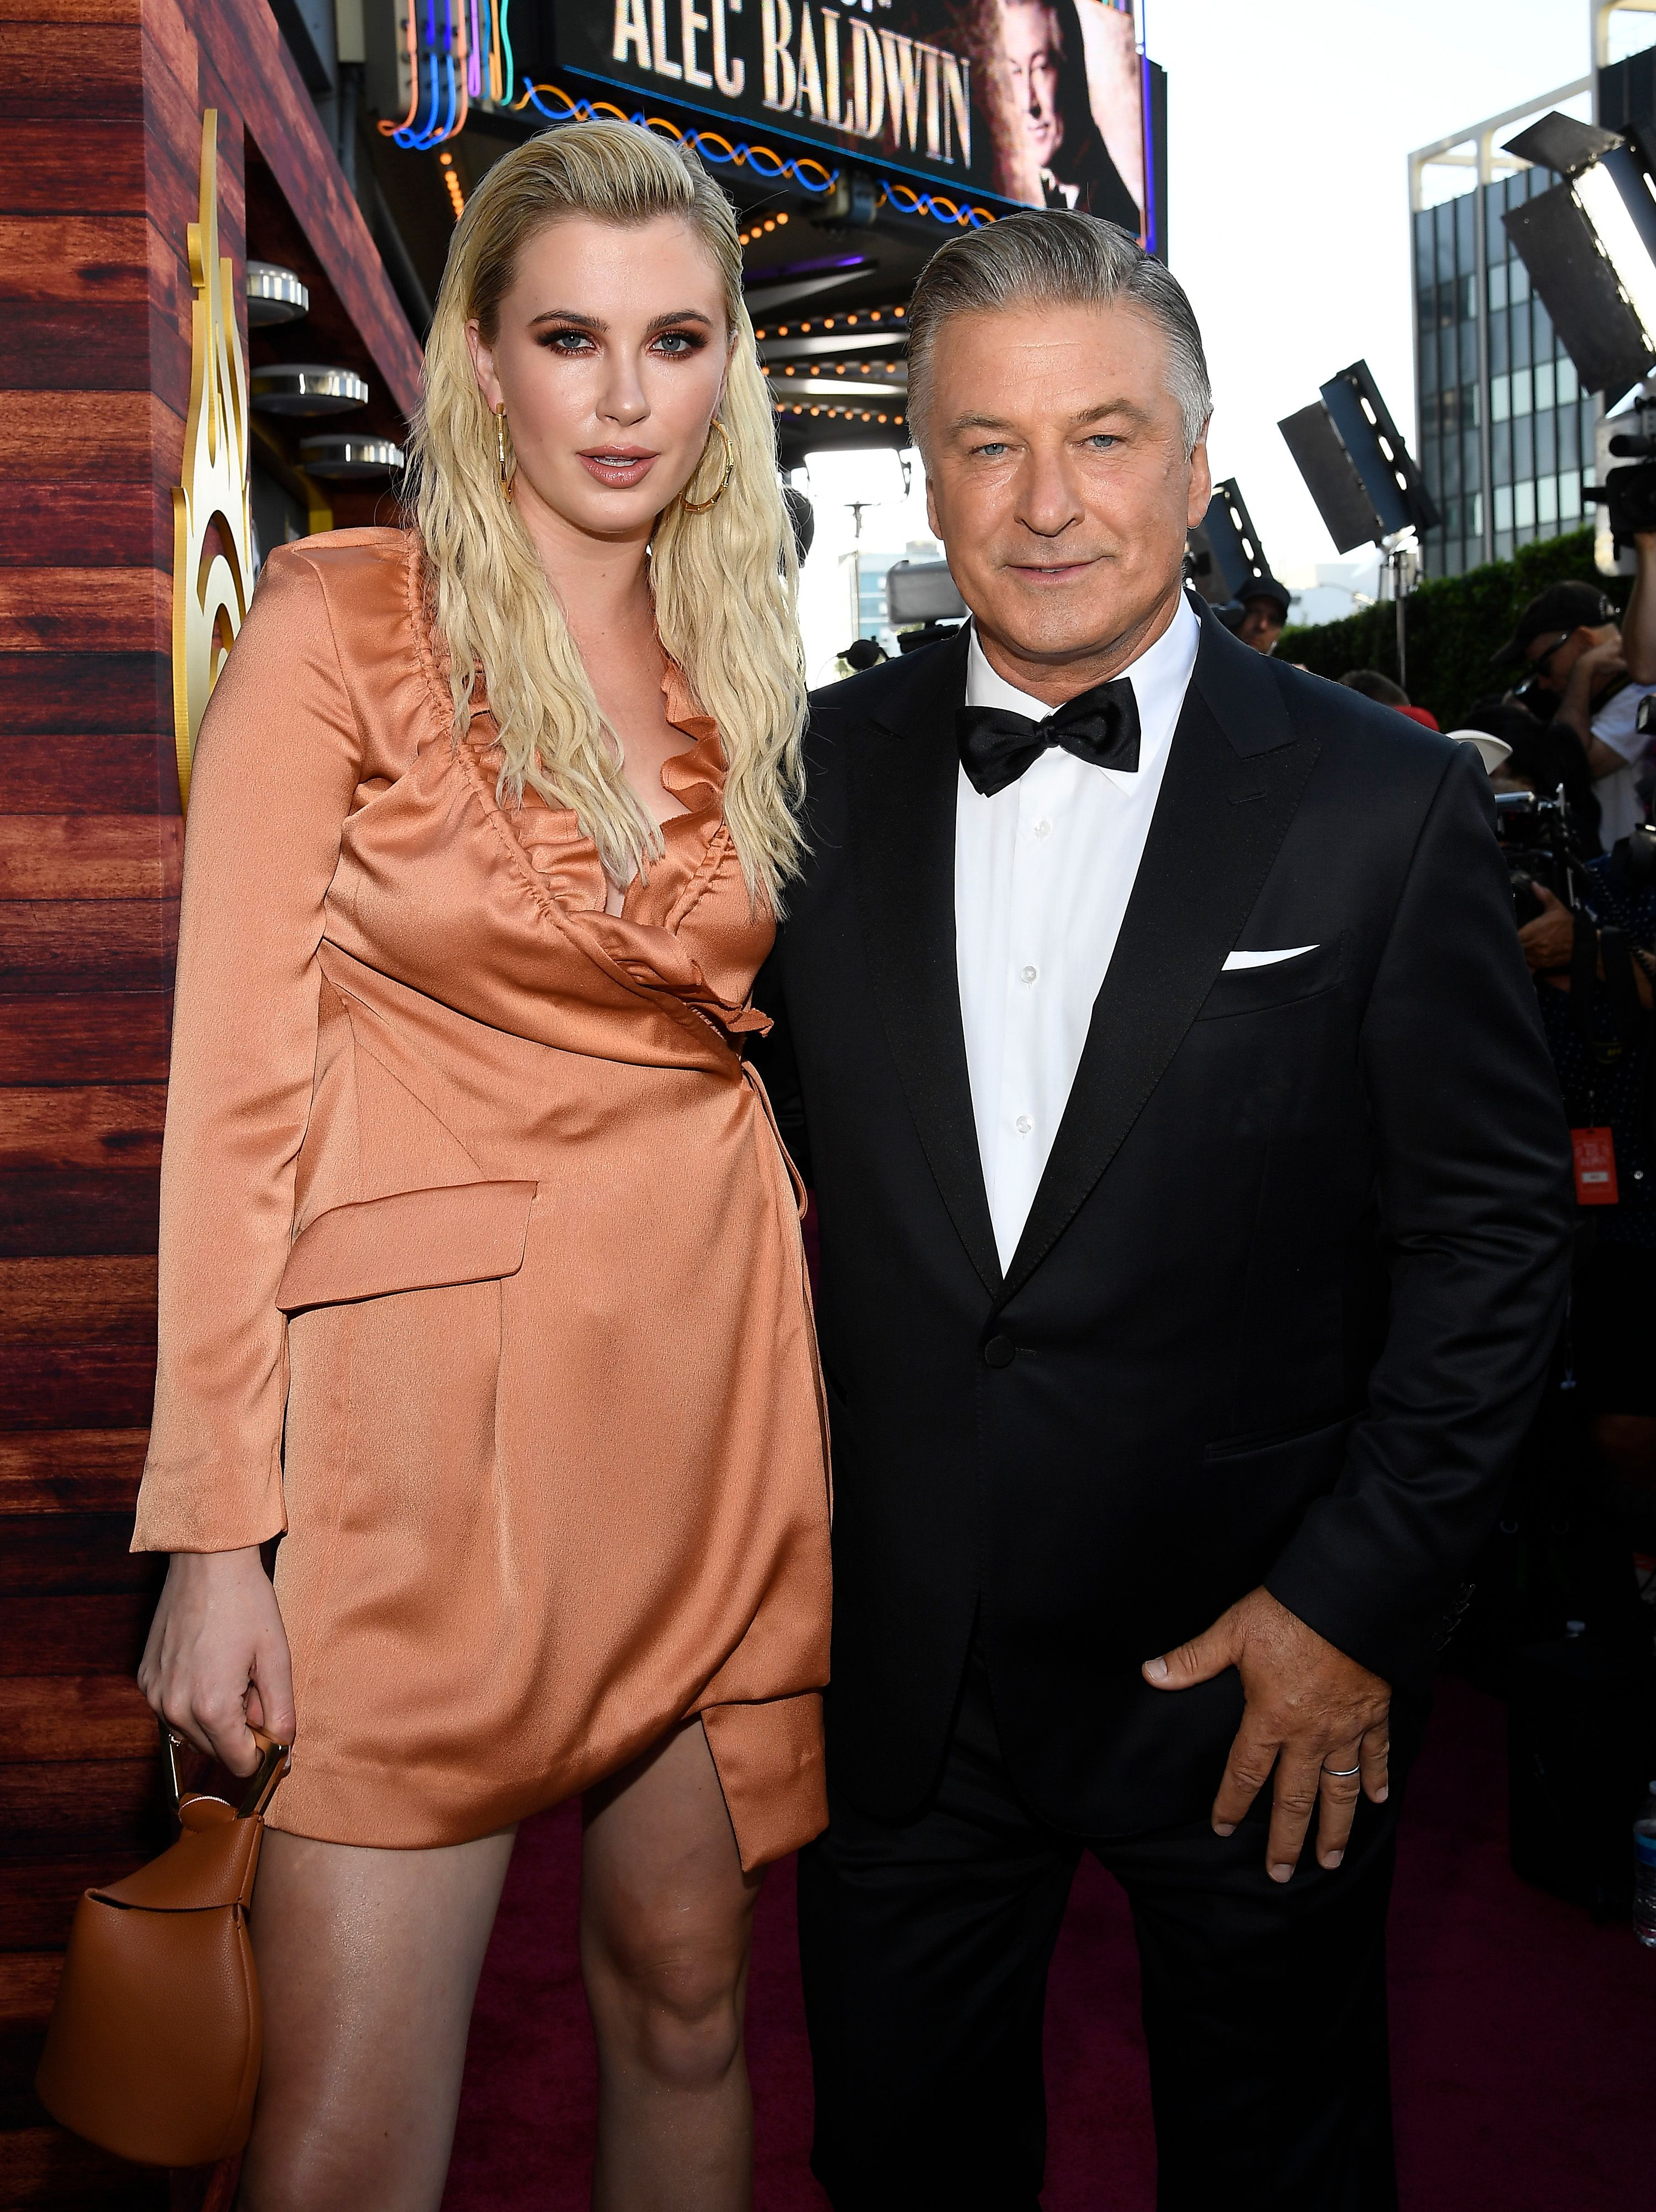 Alec and Ireland Baldwin at the Comedy Central Roast of Alec Baldwin in 2019 in Beverly Hills, California   Source: Getty Images